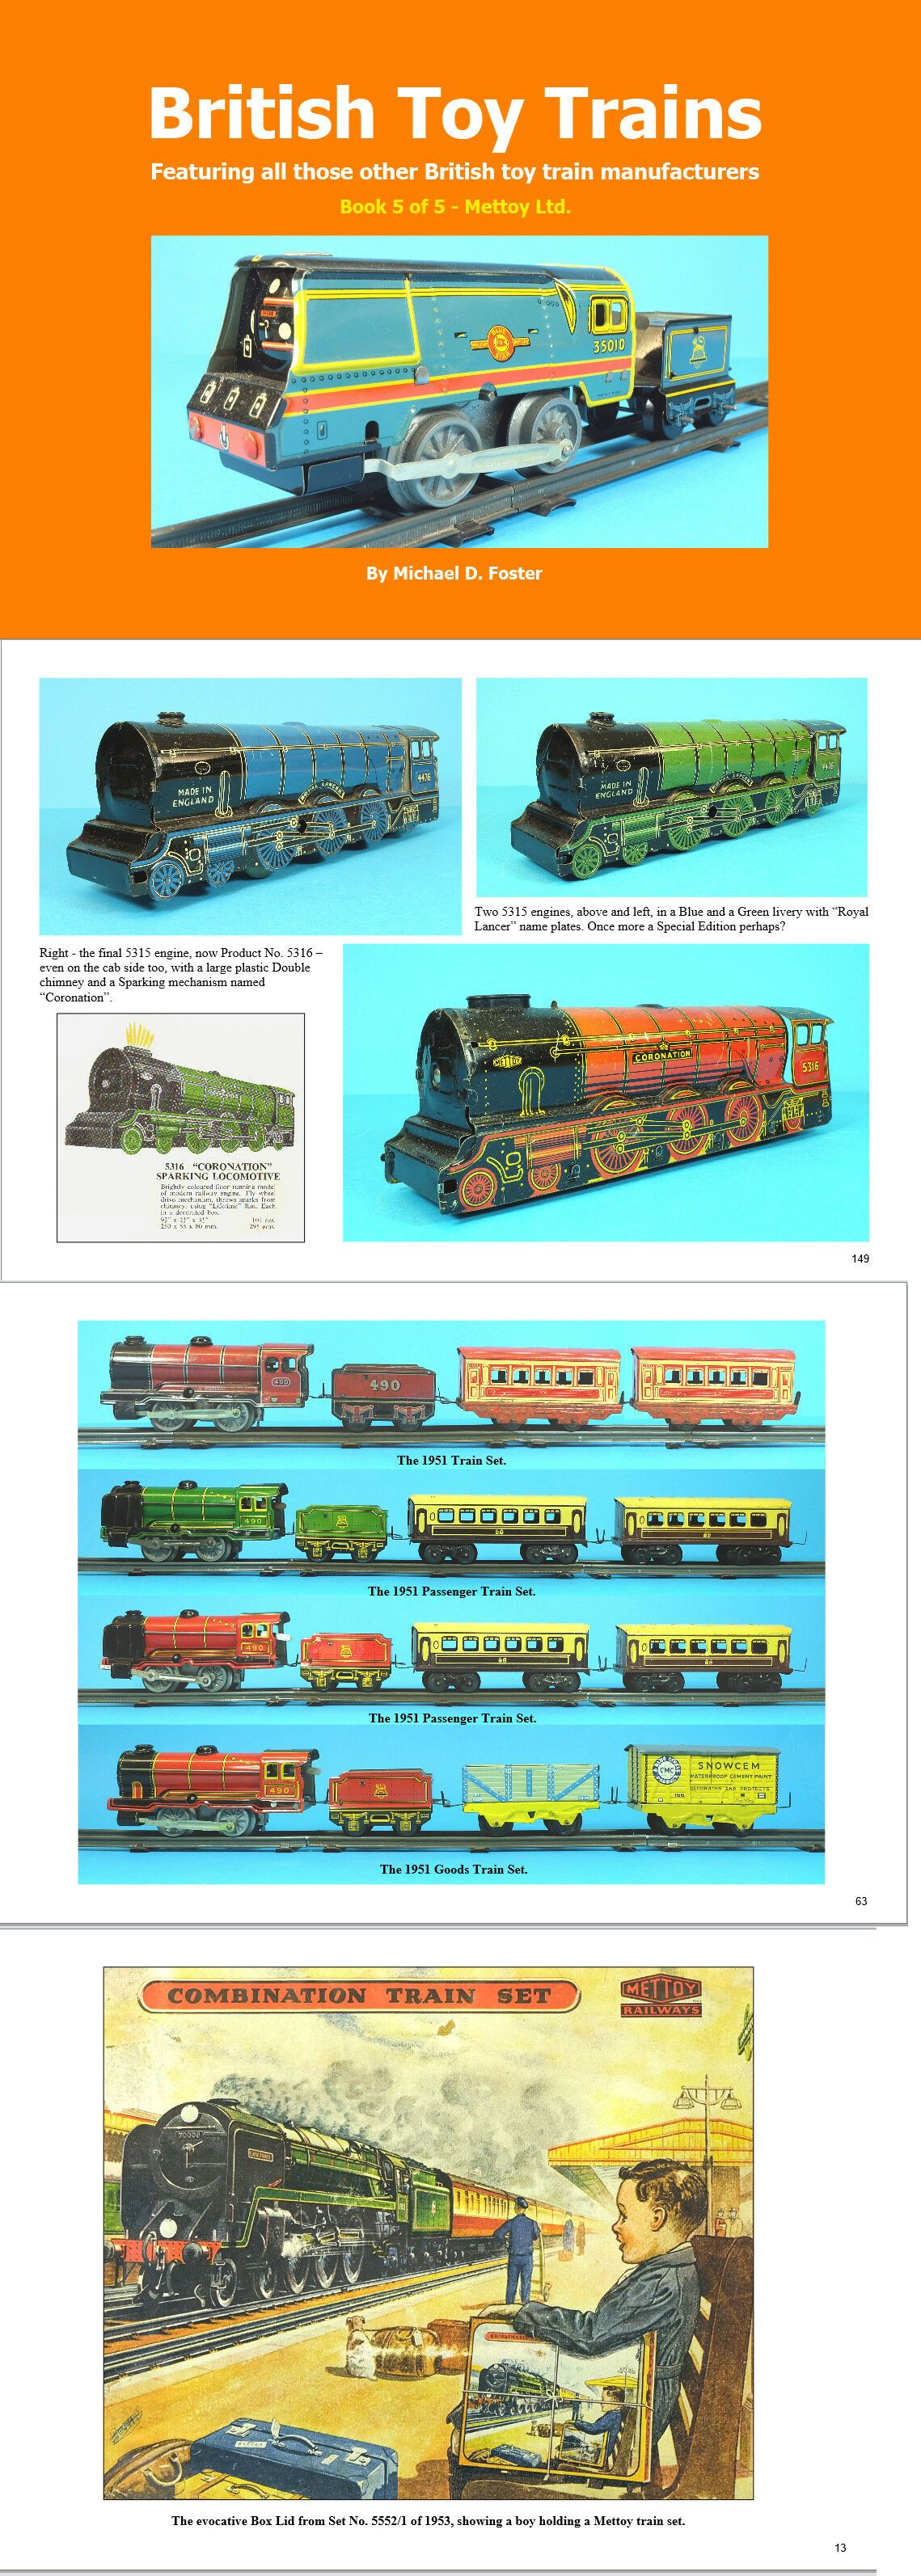 Other Model Train Media 9051: British Toy Trains Book 5